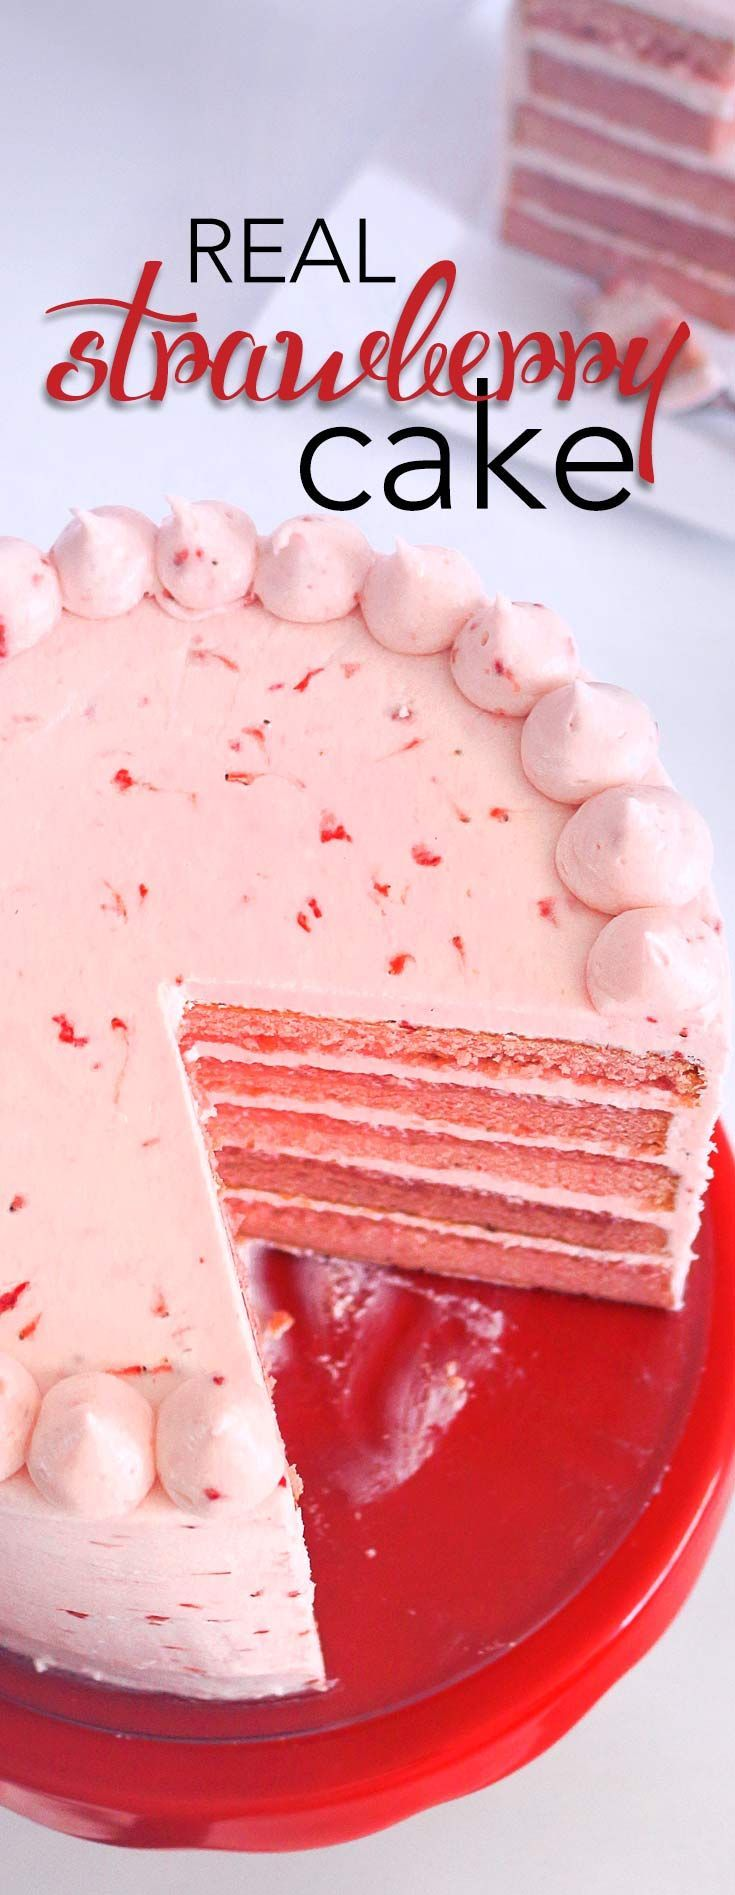 Triple Strawberry Cake with Strawberry Cream Cheese Frosting. This cake is made with all real strawberries! No artificial flavors, NO added J-Ello.